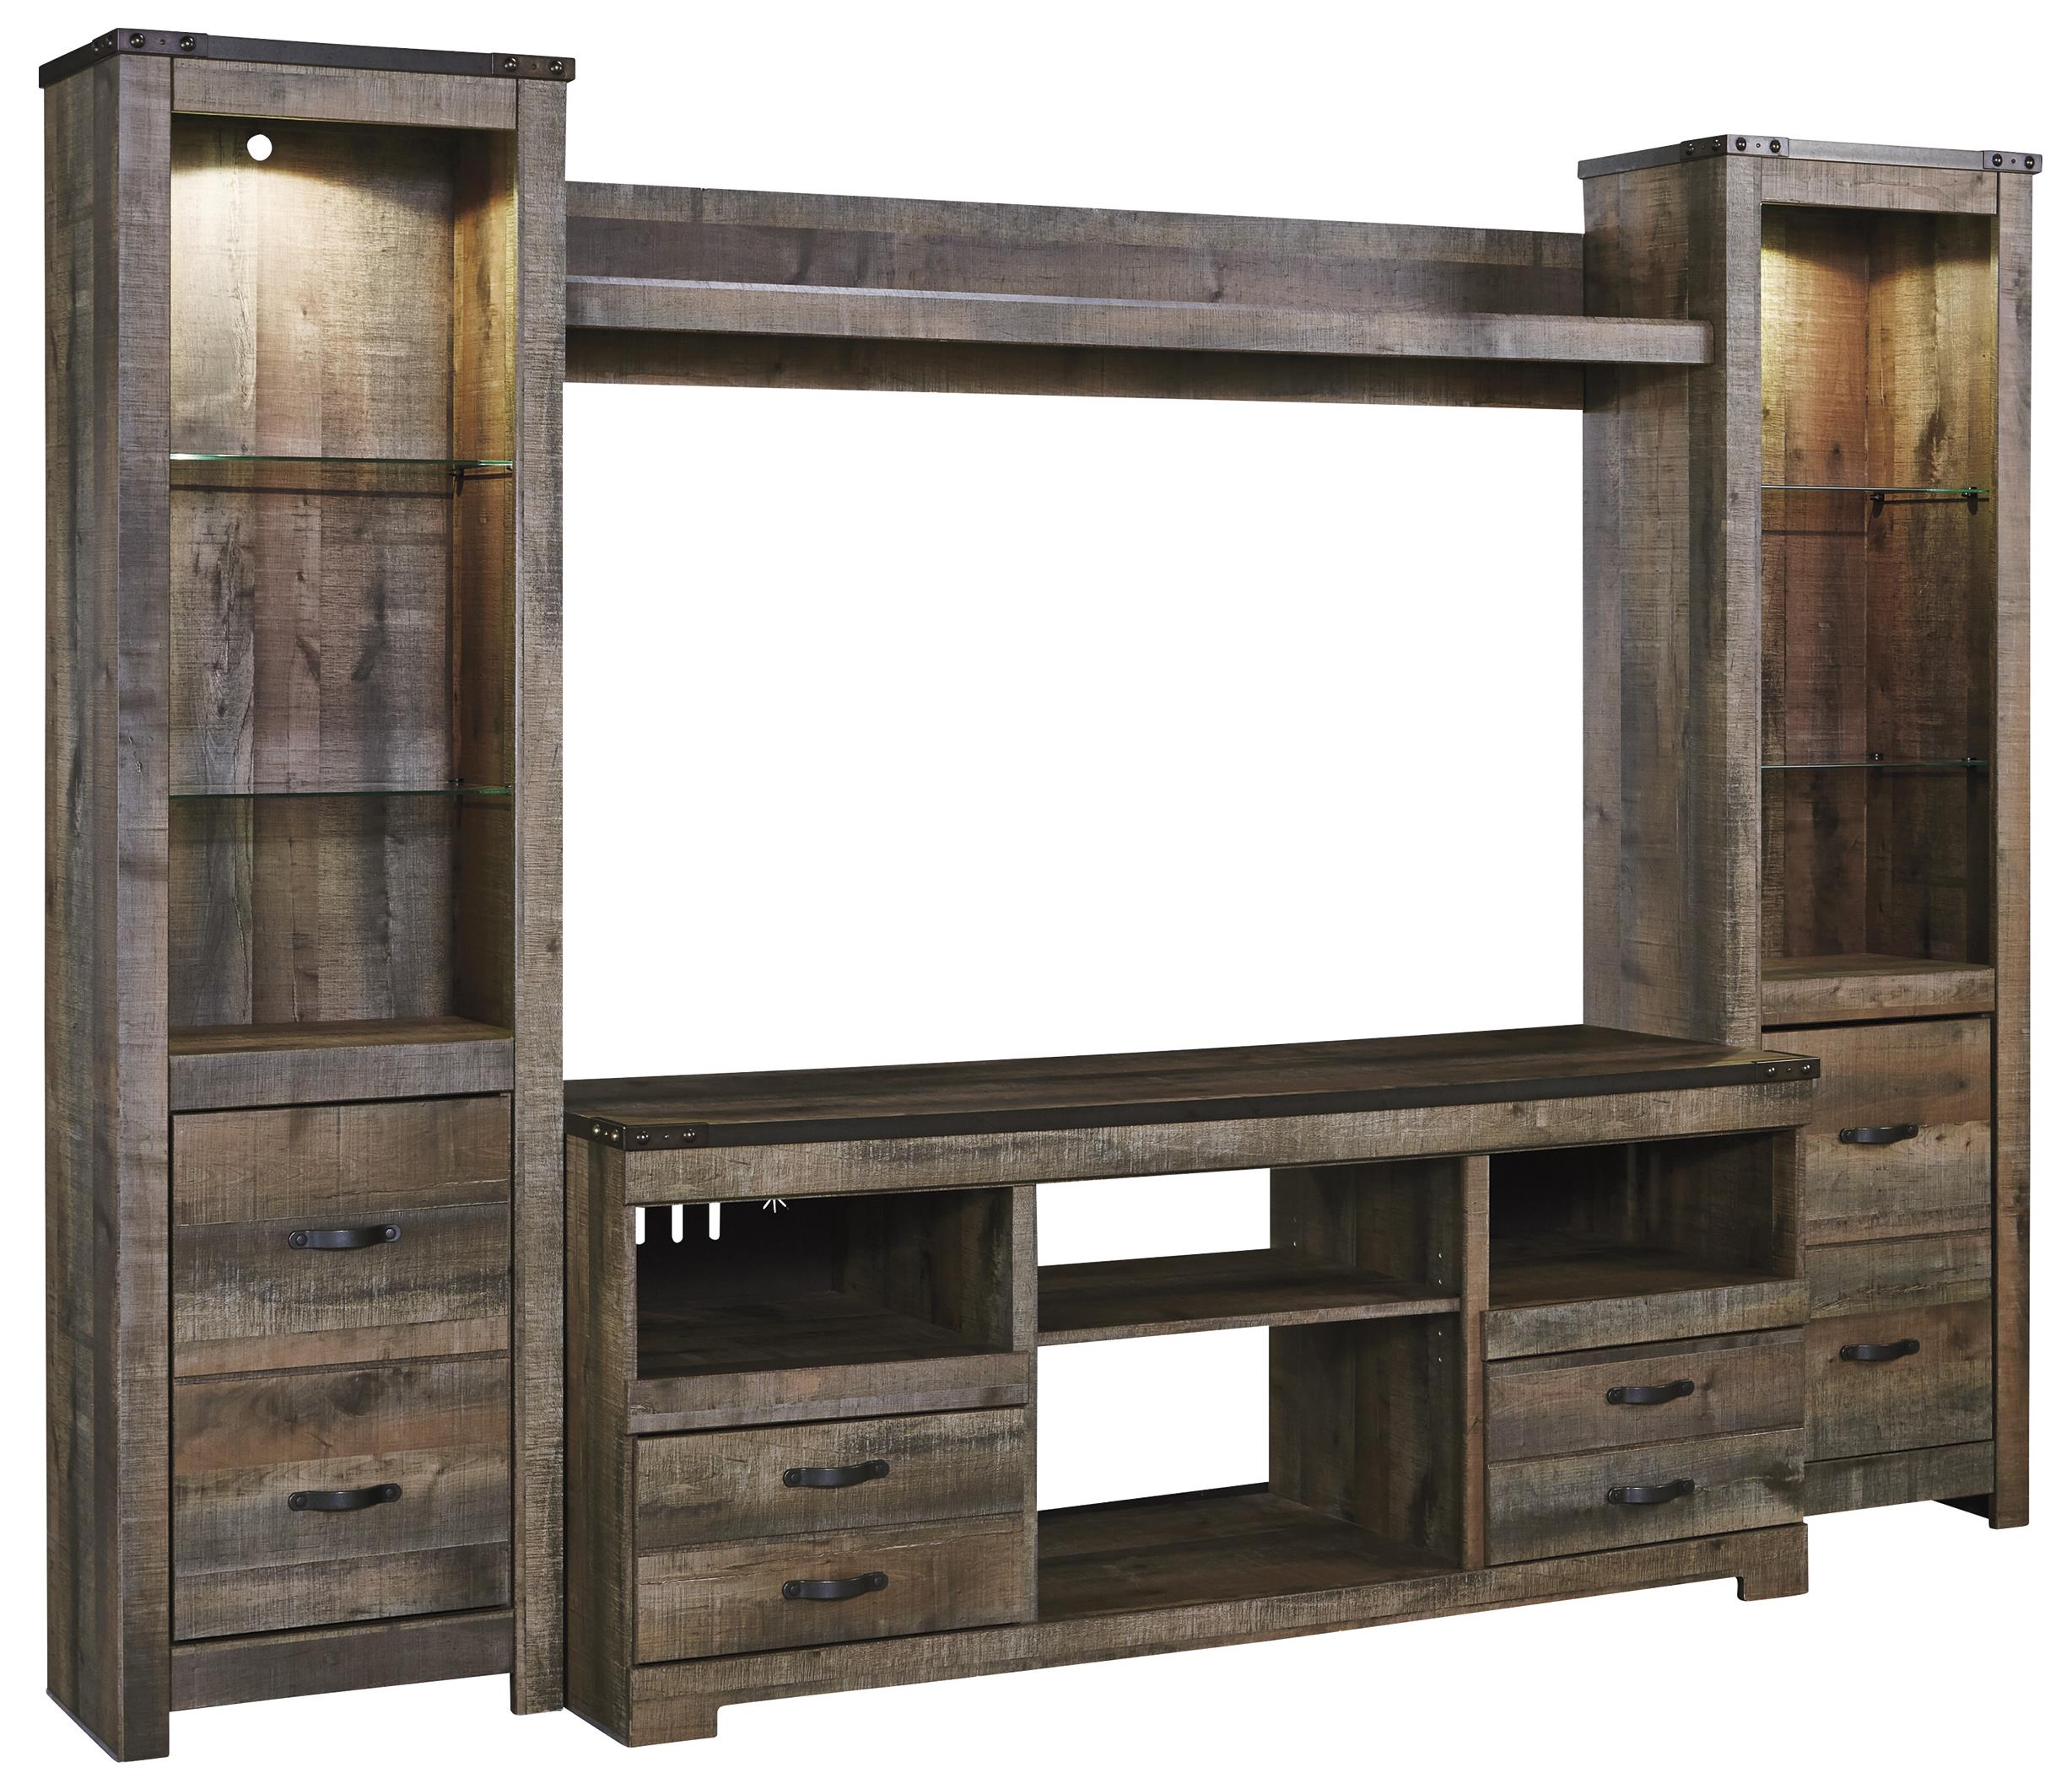 Rustic Large Tv Stand Amp 2 Tall Piers W Bridge By